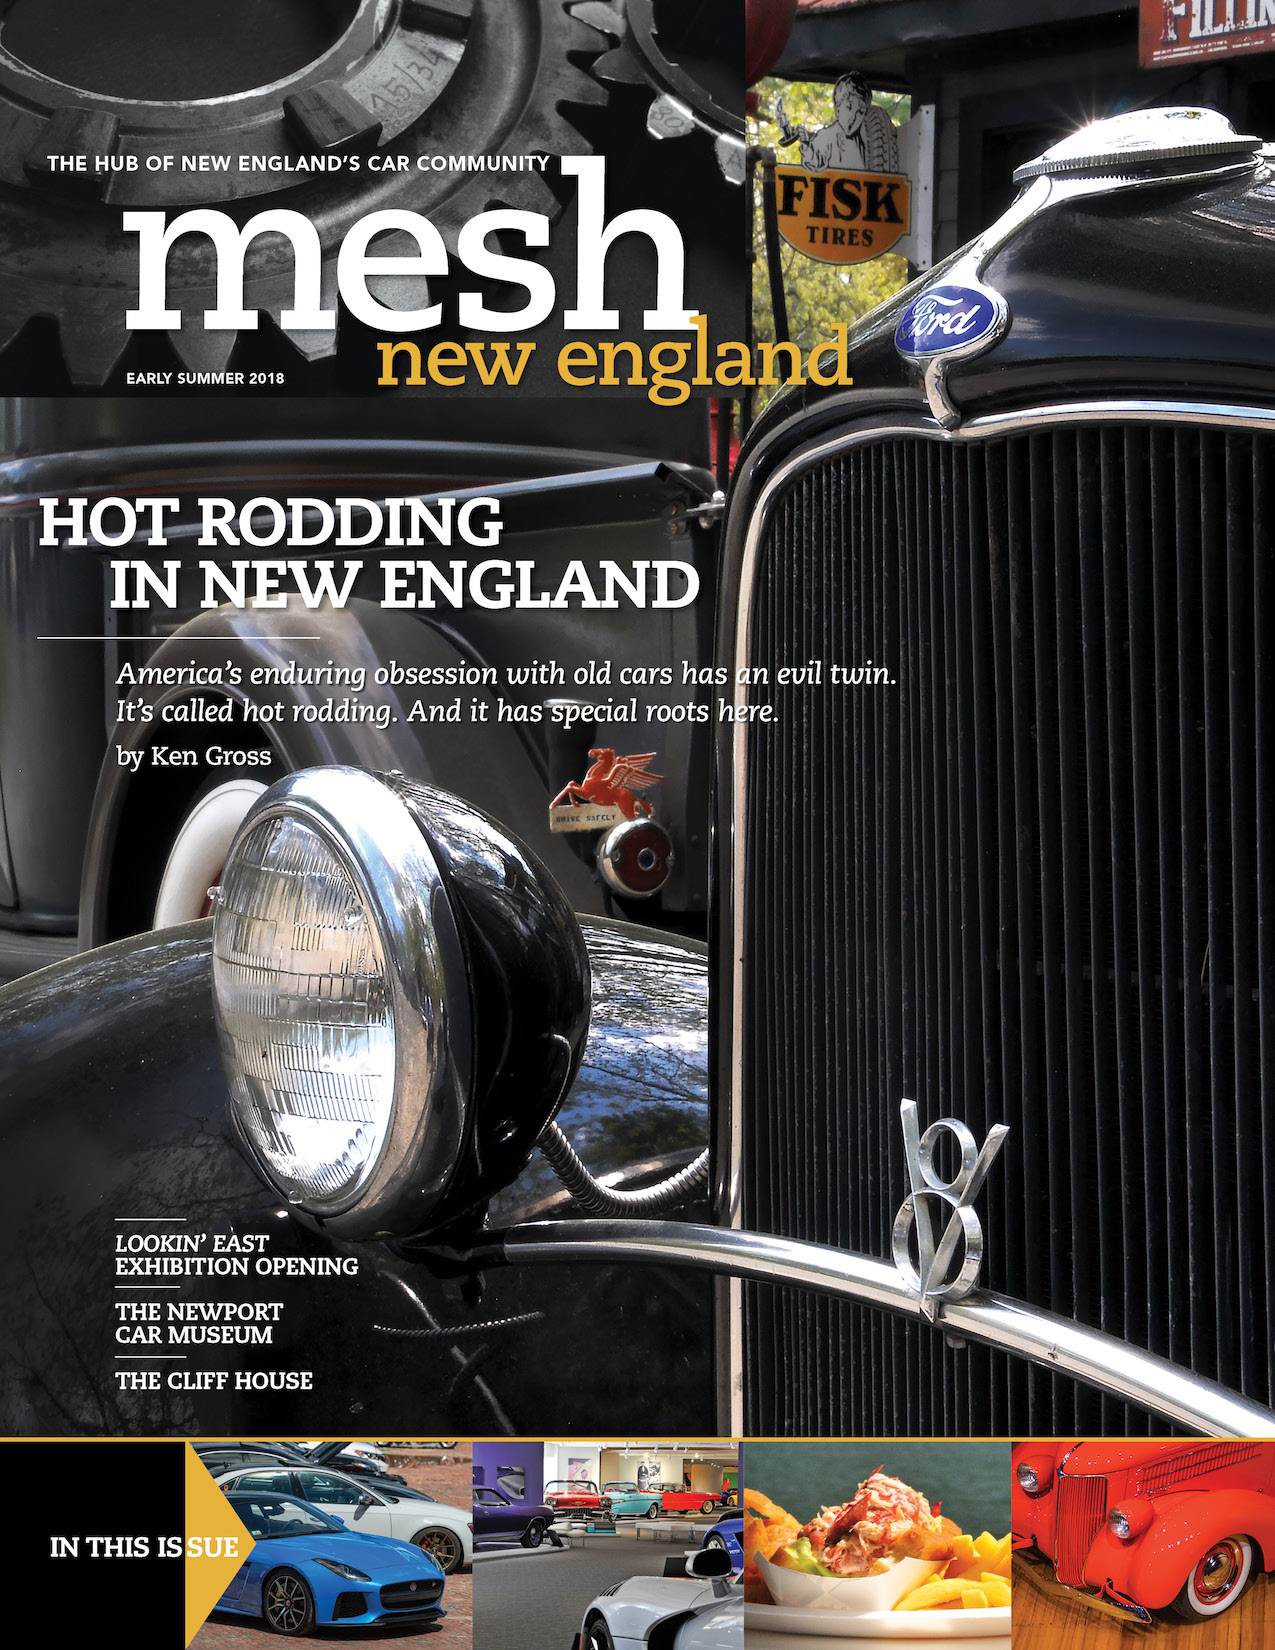 Early Summer 2018 cover of Mesh New England Magazine with Ford hot rod pictured.jpg